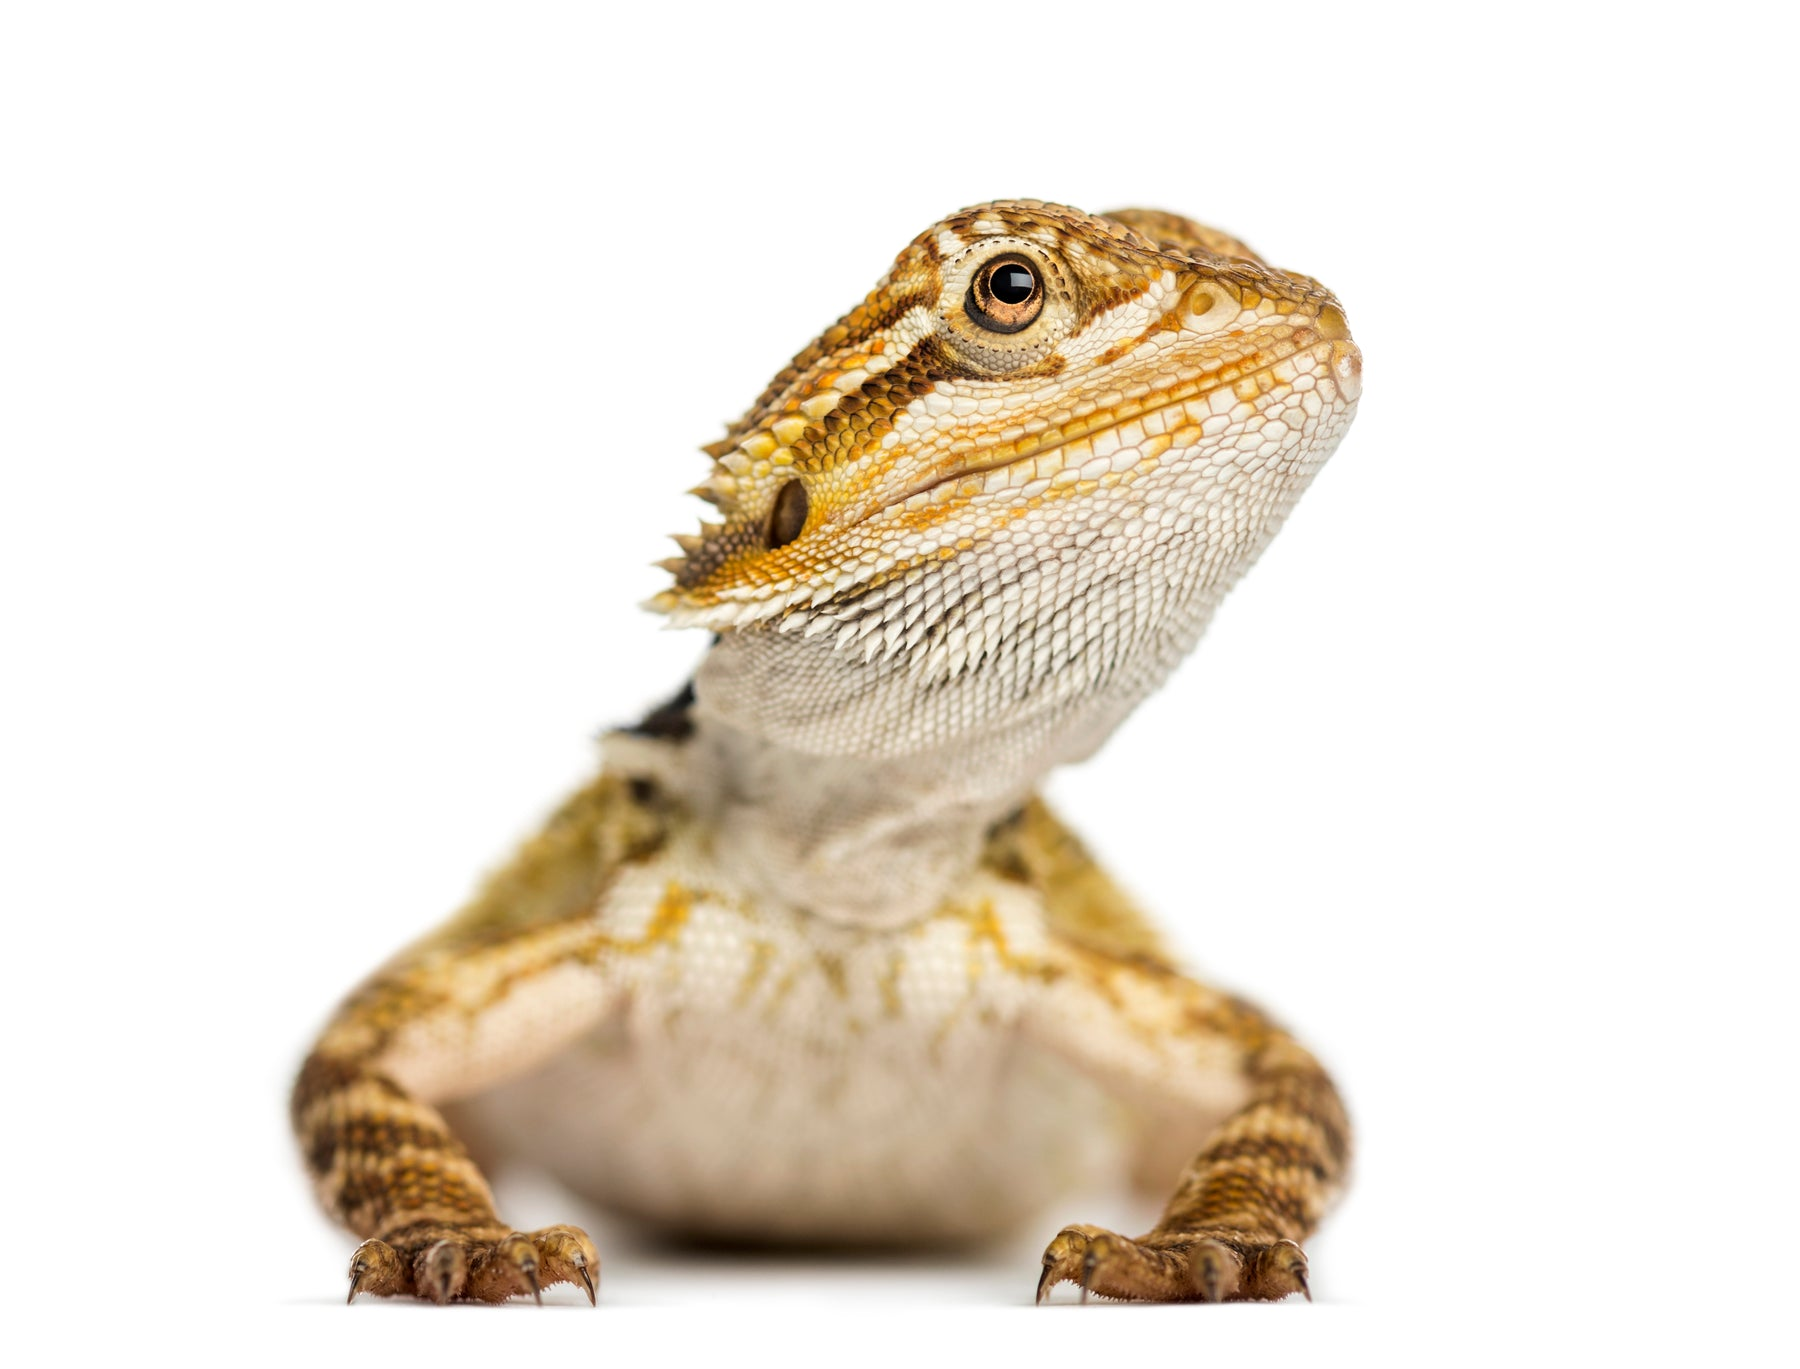 How Long Do Bearded Dragons Live?